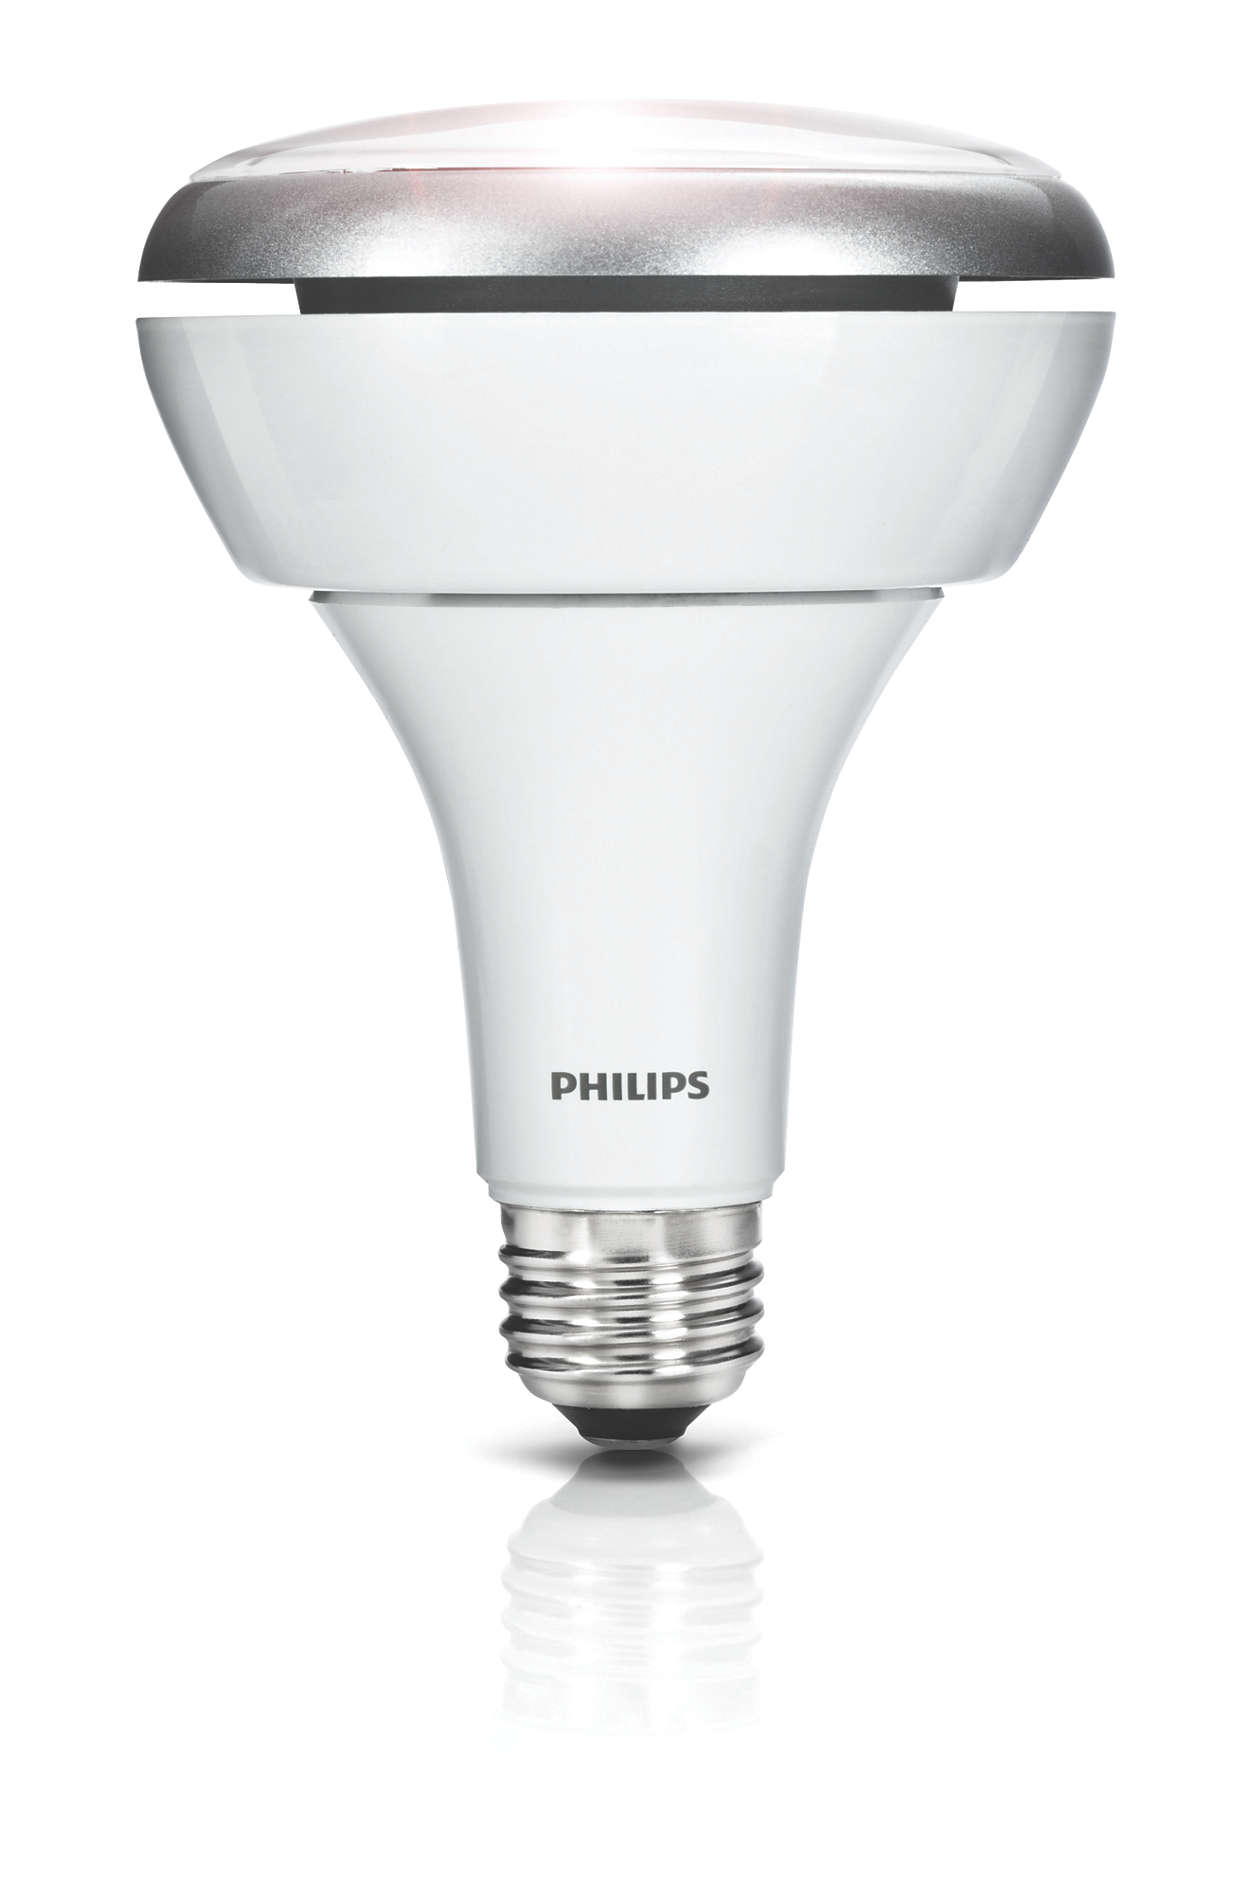 br led with airflux technology led lamps philips lighting. Black Bedroom Furniture Sets. Home Design Ideas